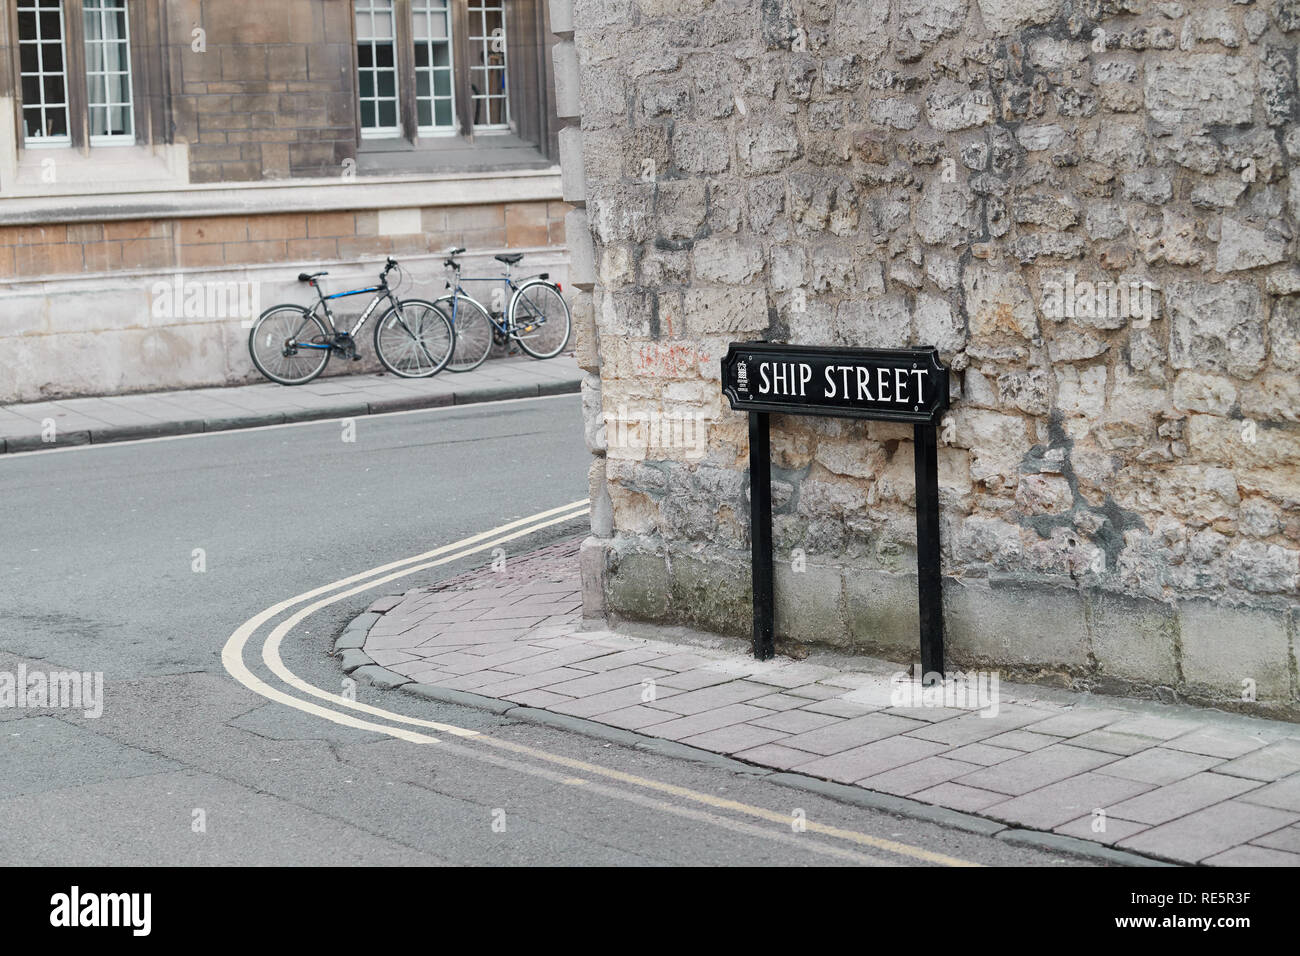 Stone wall of Jesus college, university of Oxford, England, abutting Ship street, with Exeter college in the background. - Stock Image